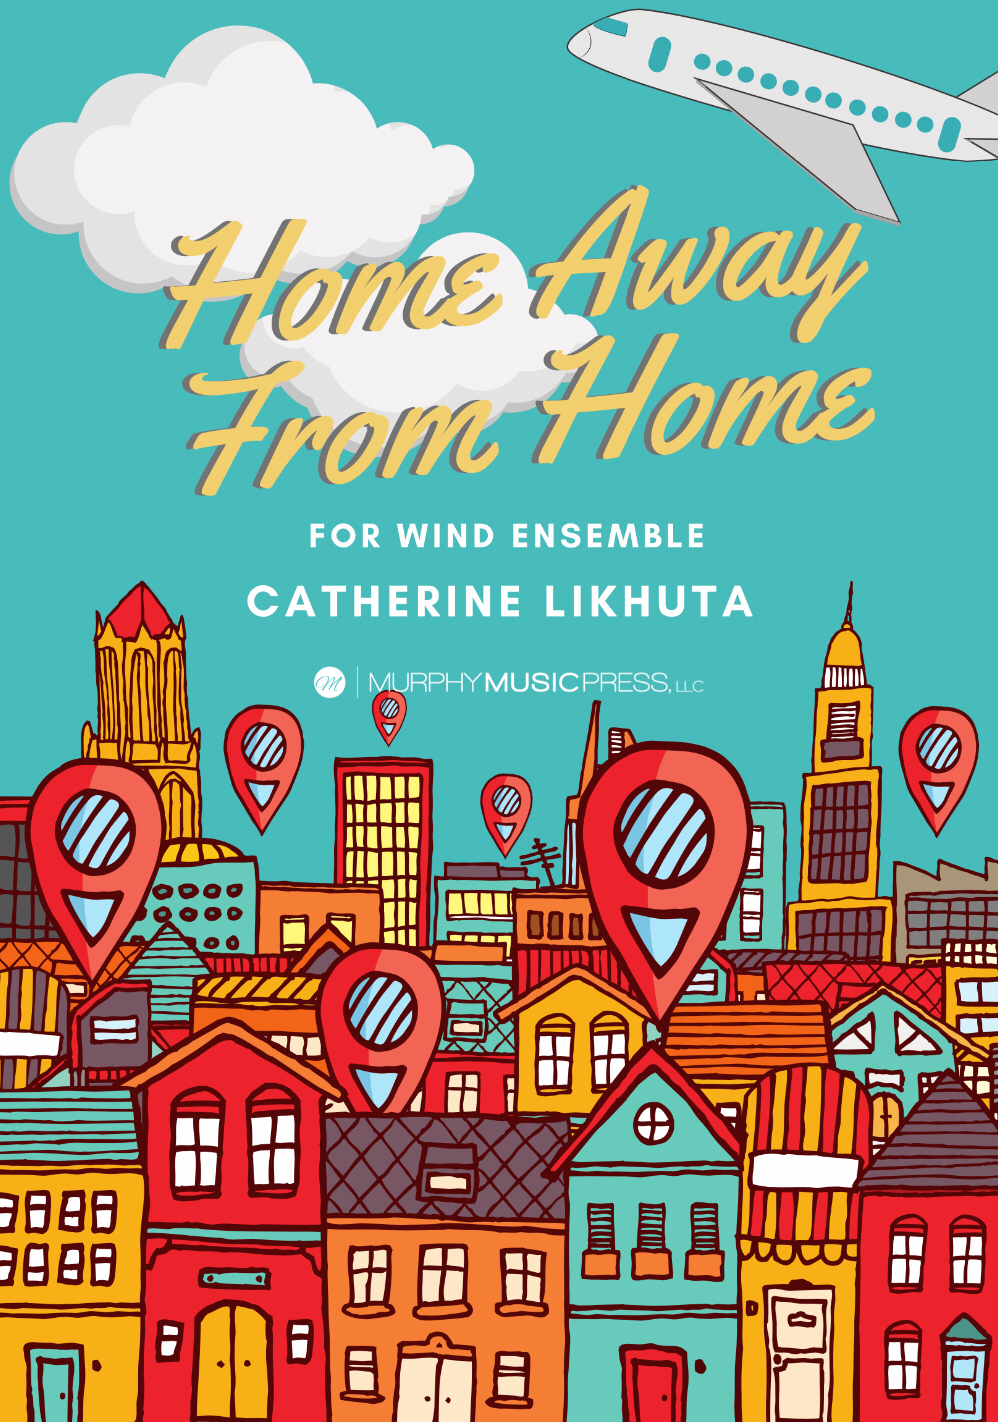 Home Away From Home by Catherine Likhuta